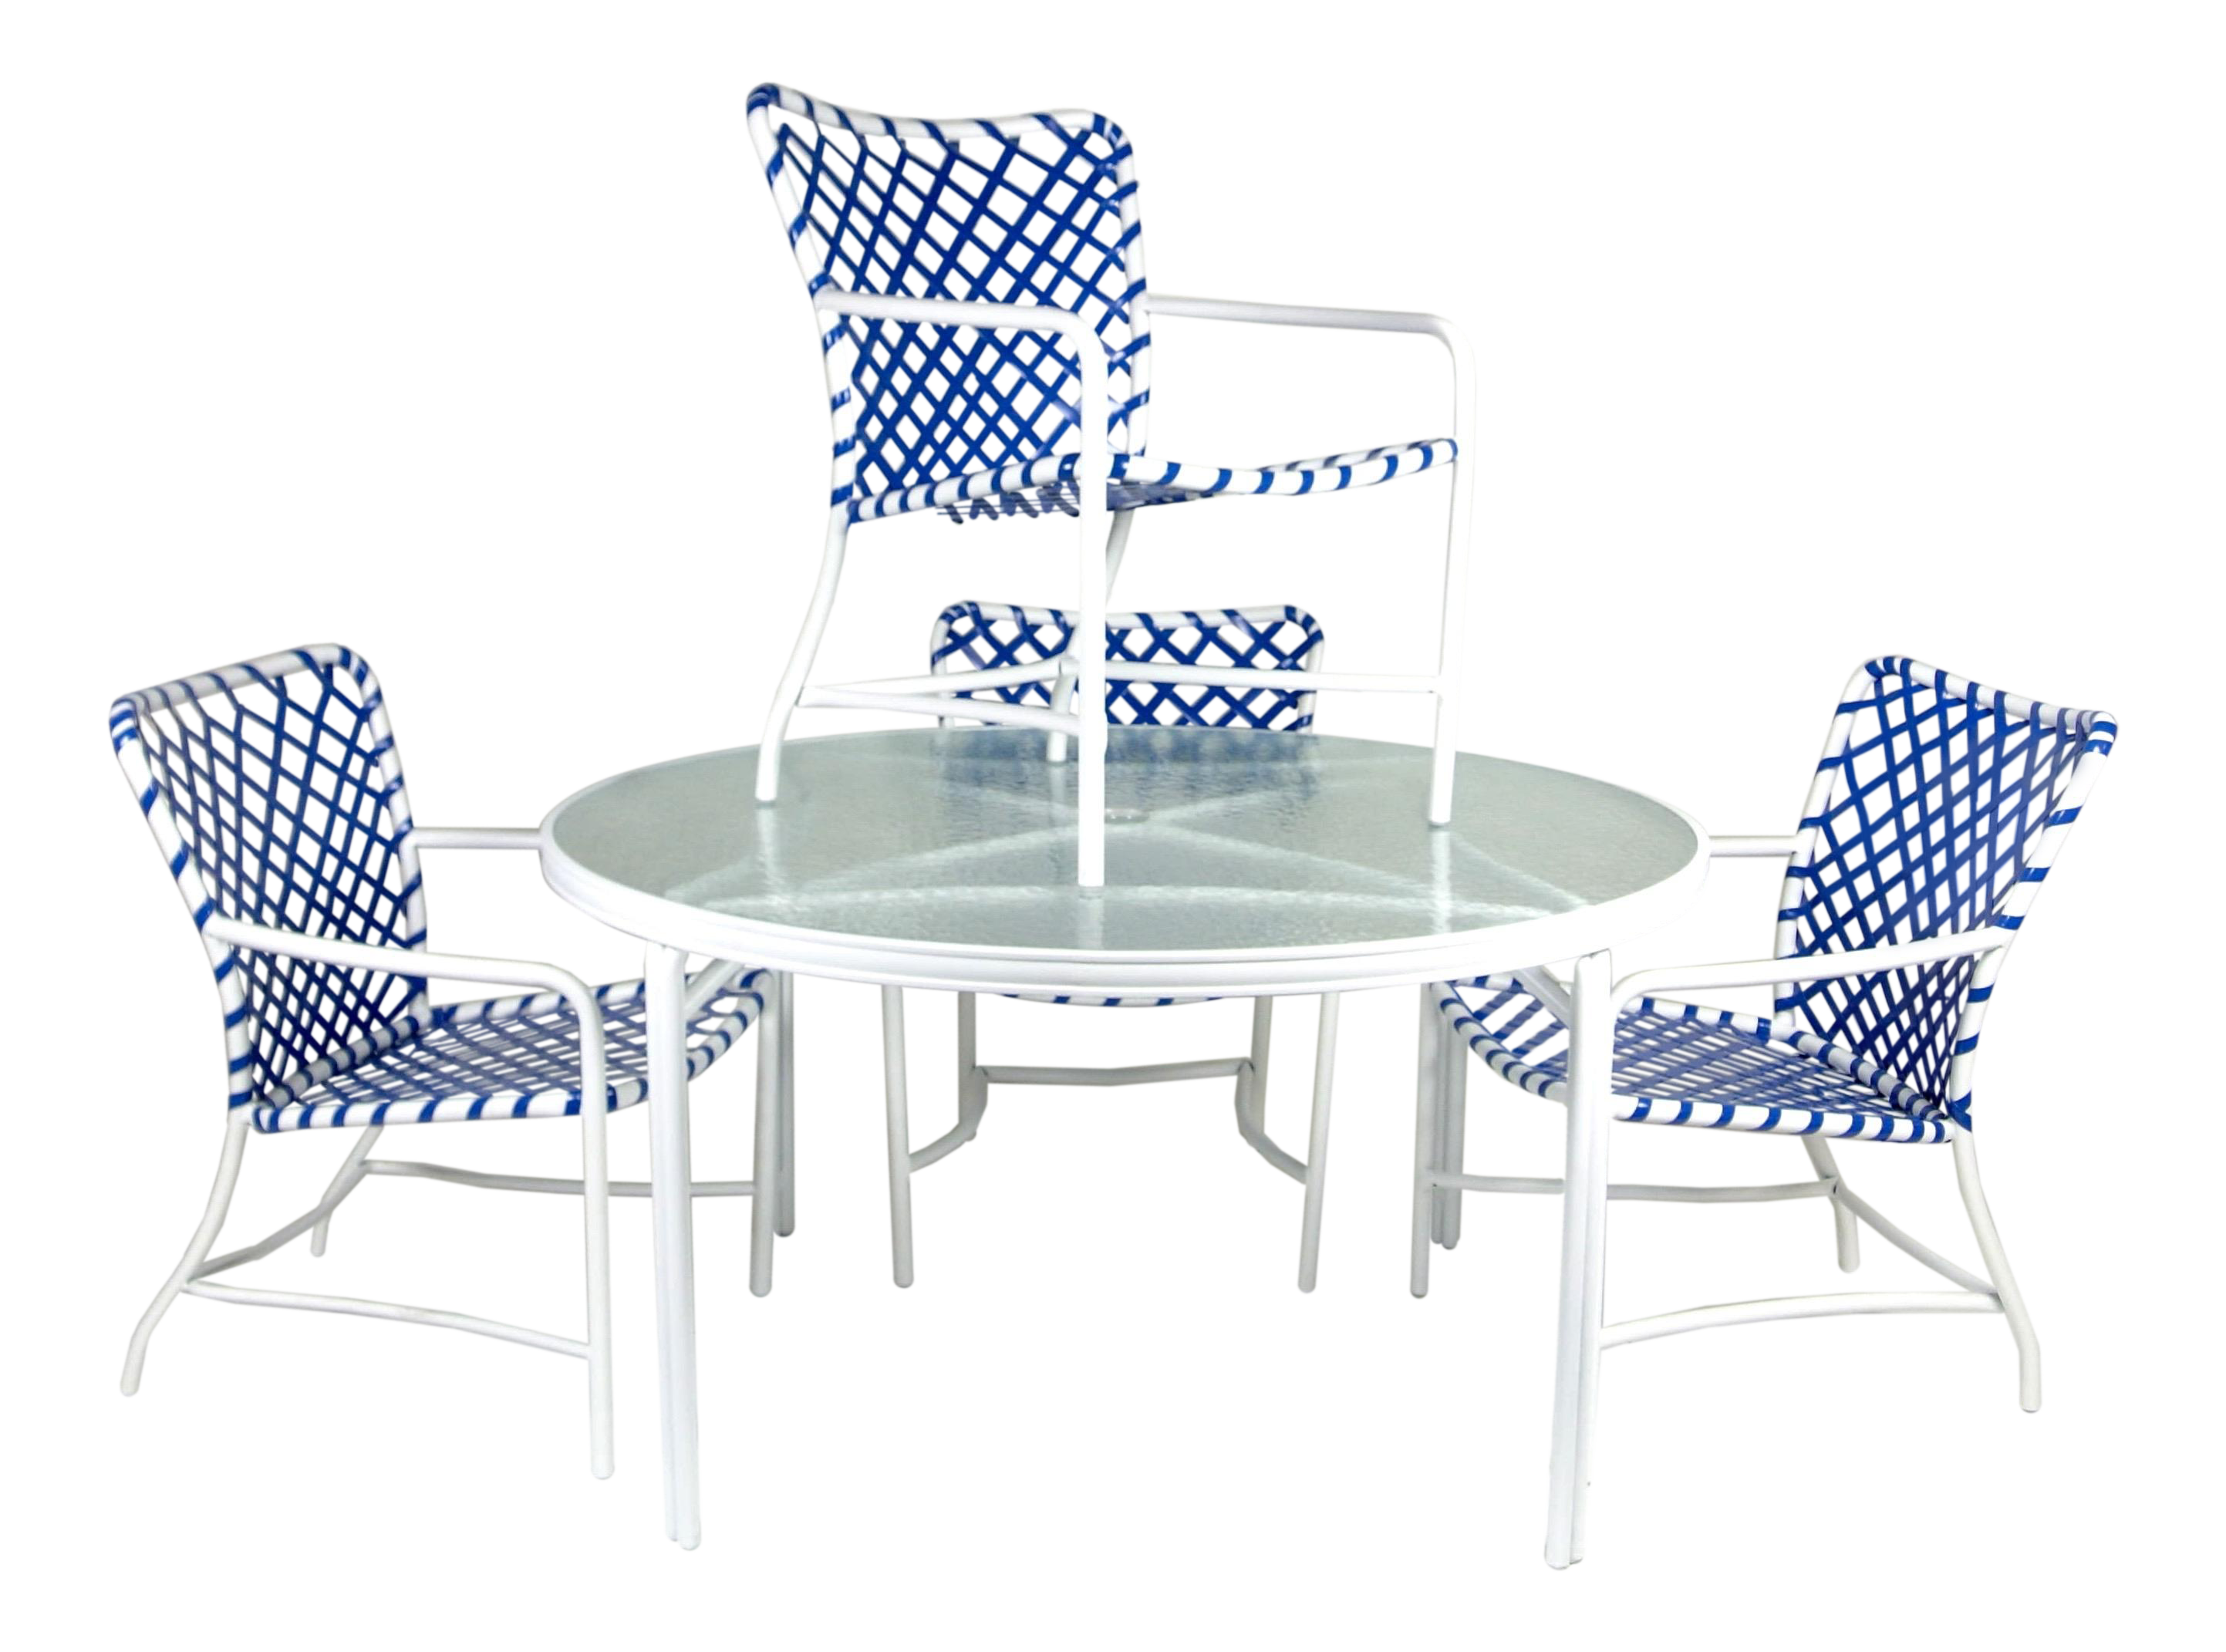 Introduced in 1964 and became one of the most popular outdoor poolside patio furniture restored by cfr this aluminum frame chair was powder coated